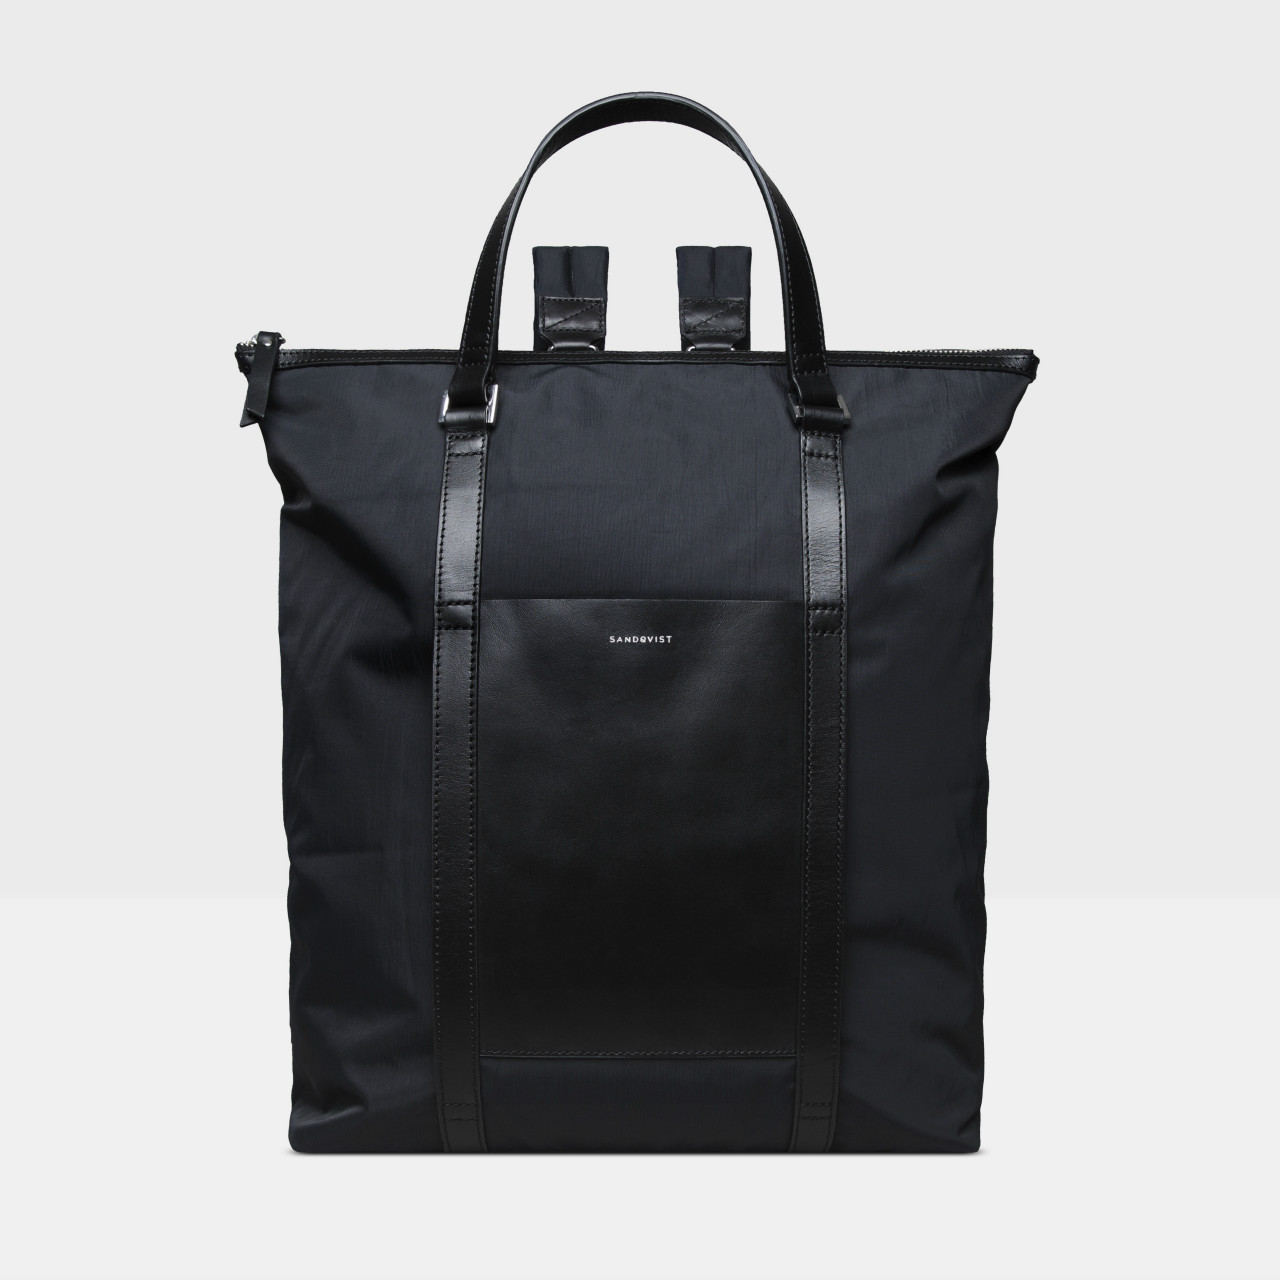 サムネイル:SANDQVIST サンドクヴィスト MARTA Black with Black Leather